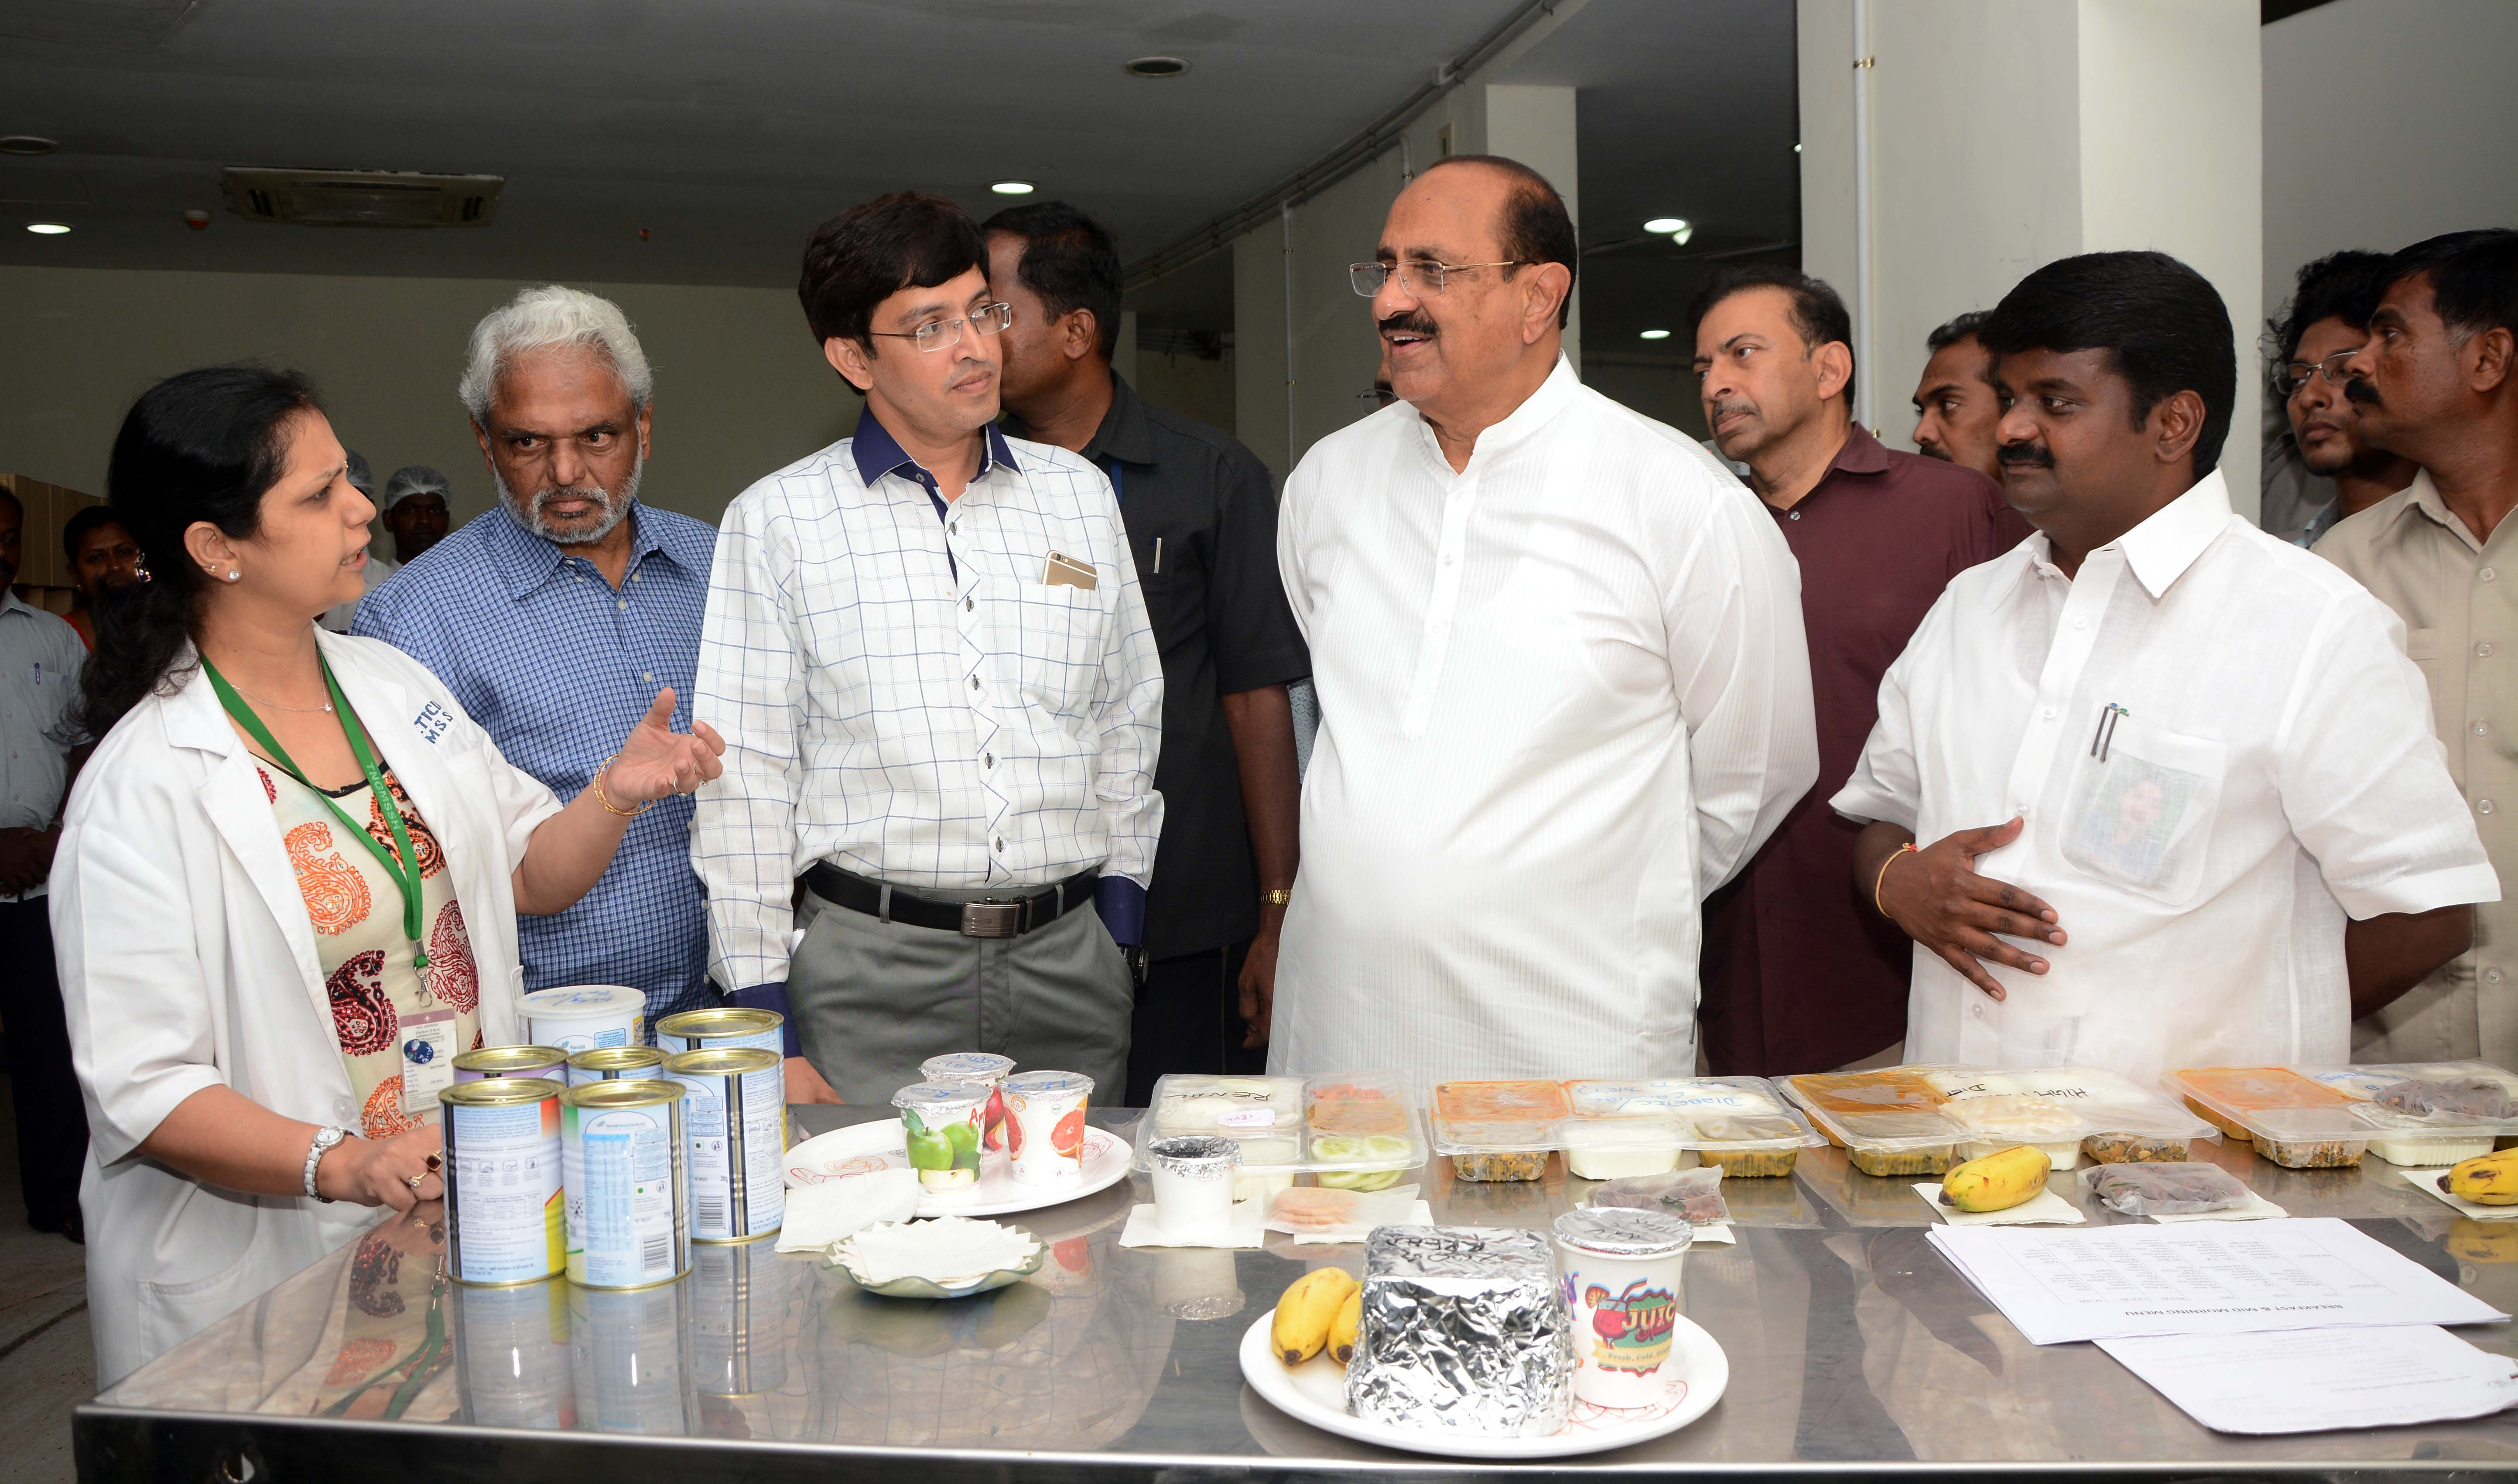 A.P Health Minister Kamineni Srinivas observing the functioning of CT Scan Machine in government hospital in Chennai on Tuesday. Kamineni Srinivas held discussions with officials of Tamil Nadu Health department and Health Minister, Tamil Nadu Governo